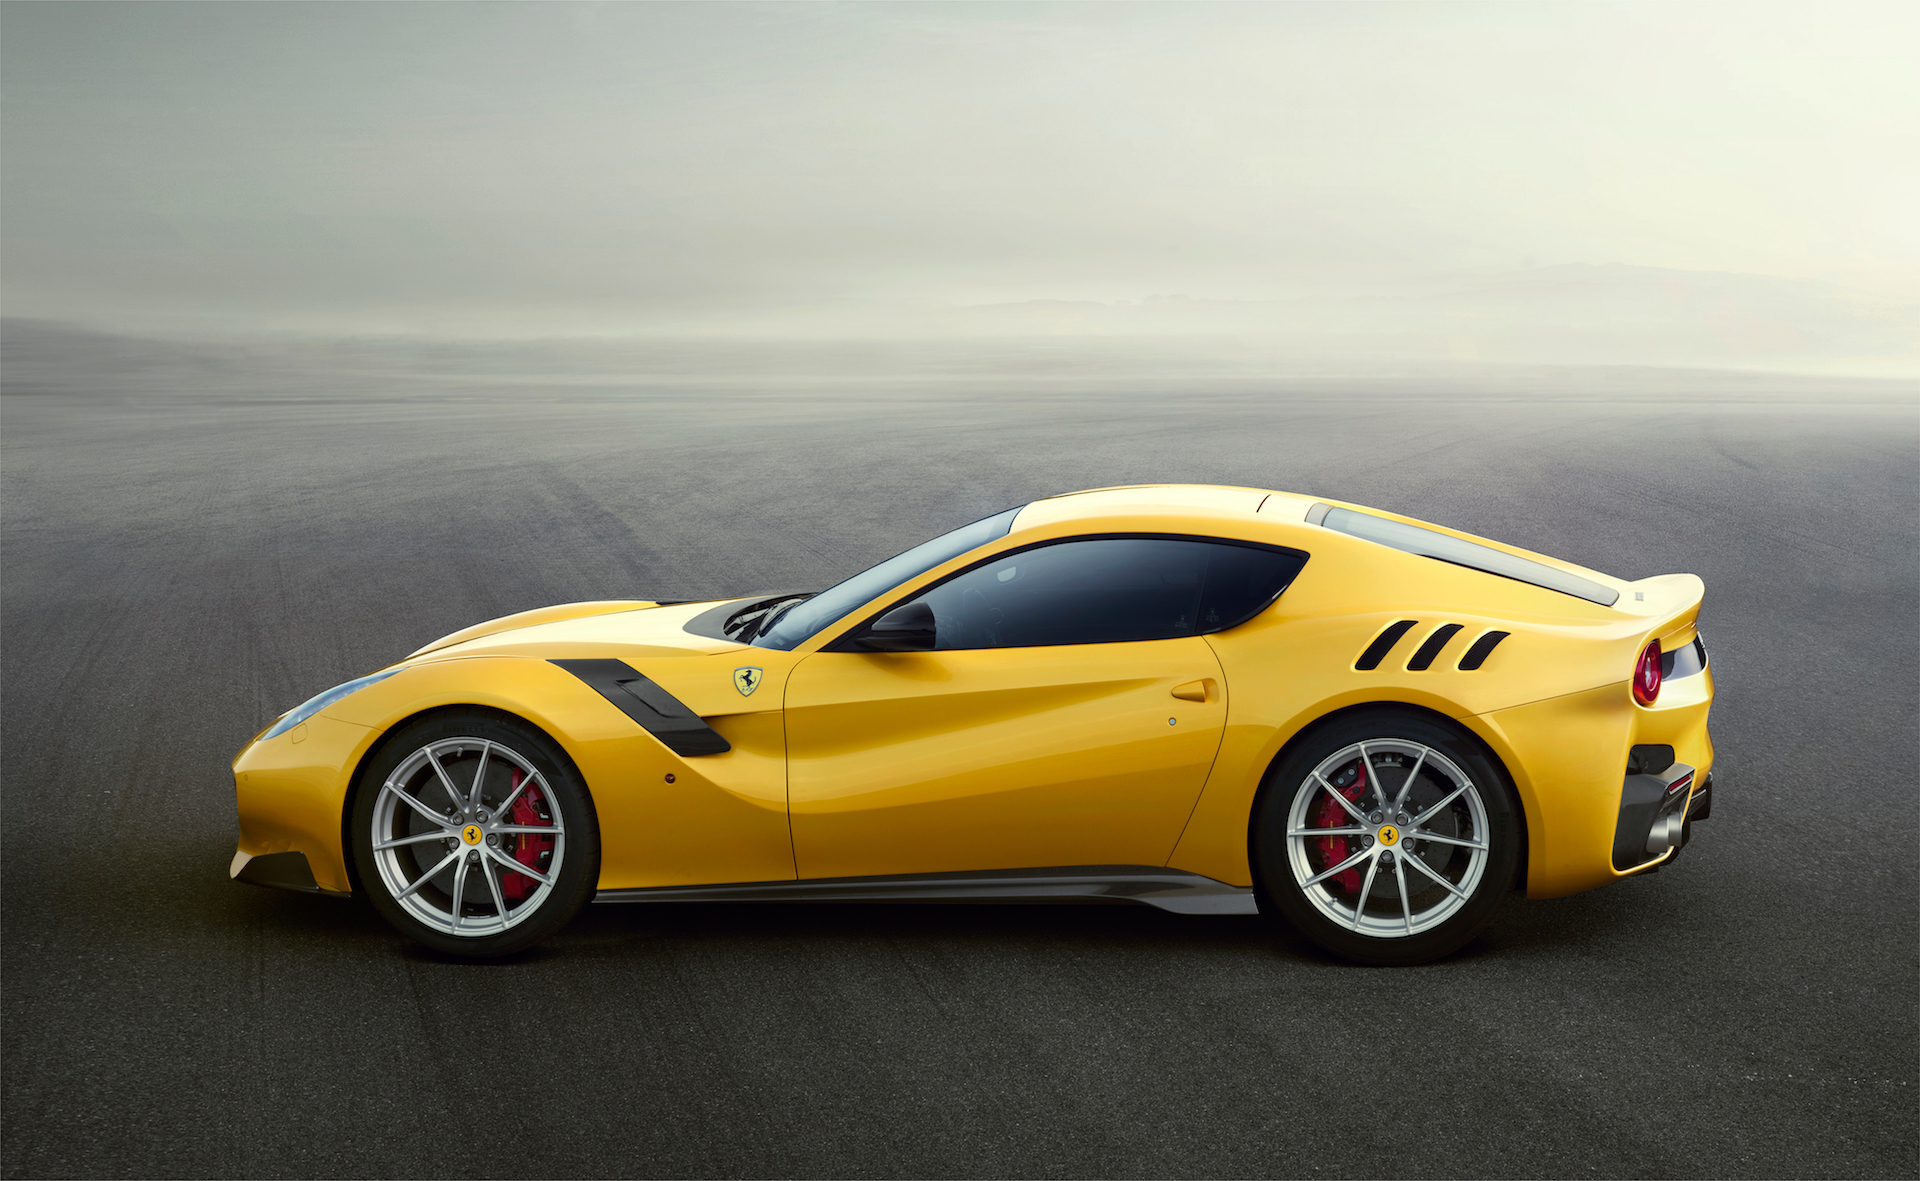 2017 ferrari f12 berlinetta review, ratings, specs, prices, and